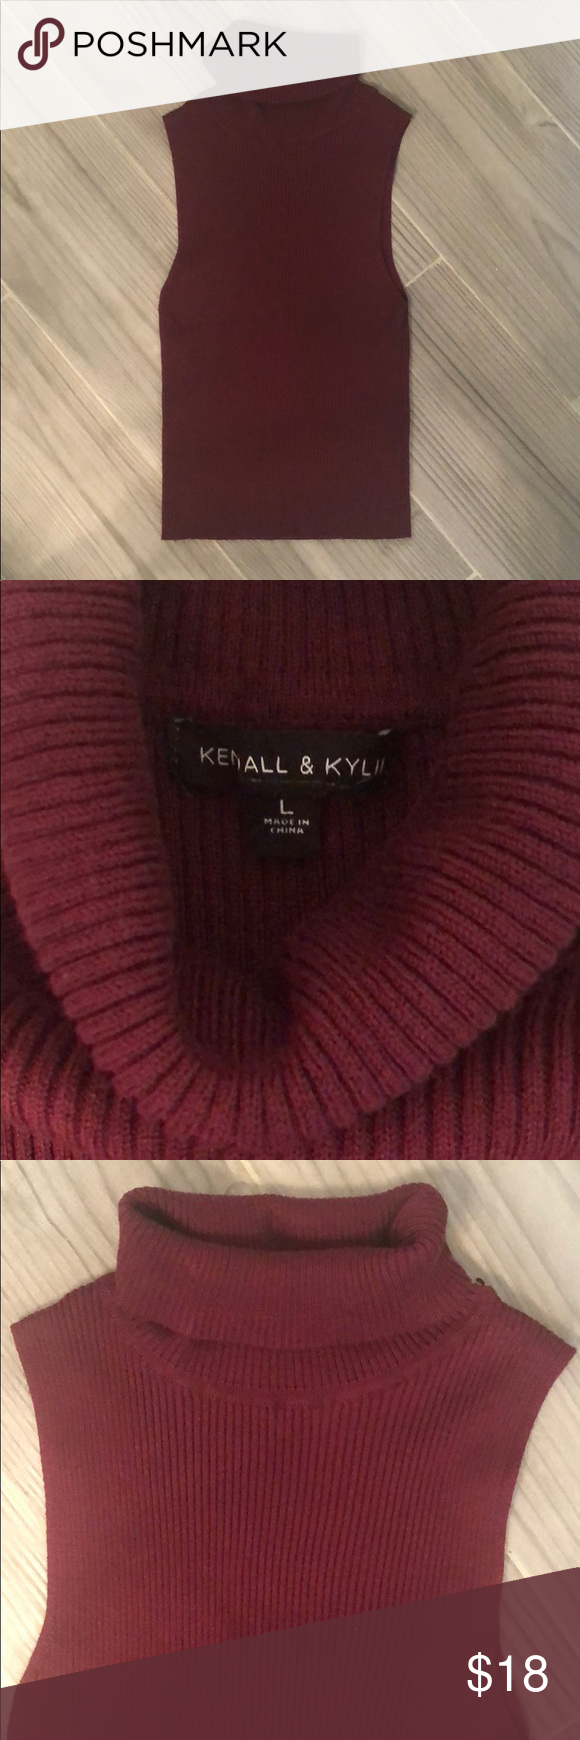 efd51a55a8d7c4 Kendall & Kylie Ribbed Turtleneck Sweater Tank Like new Kendall & Kylie  Ribbed Turtleneck sweater tank. Slightly cropped, stretchy material.